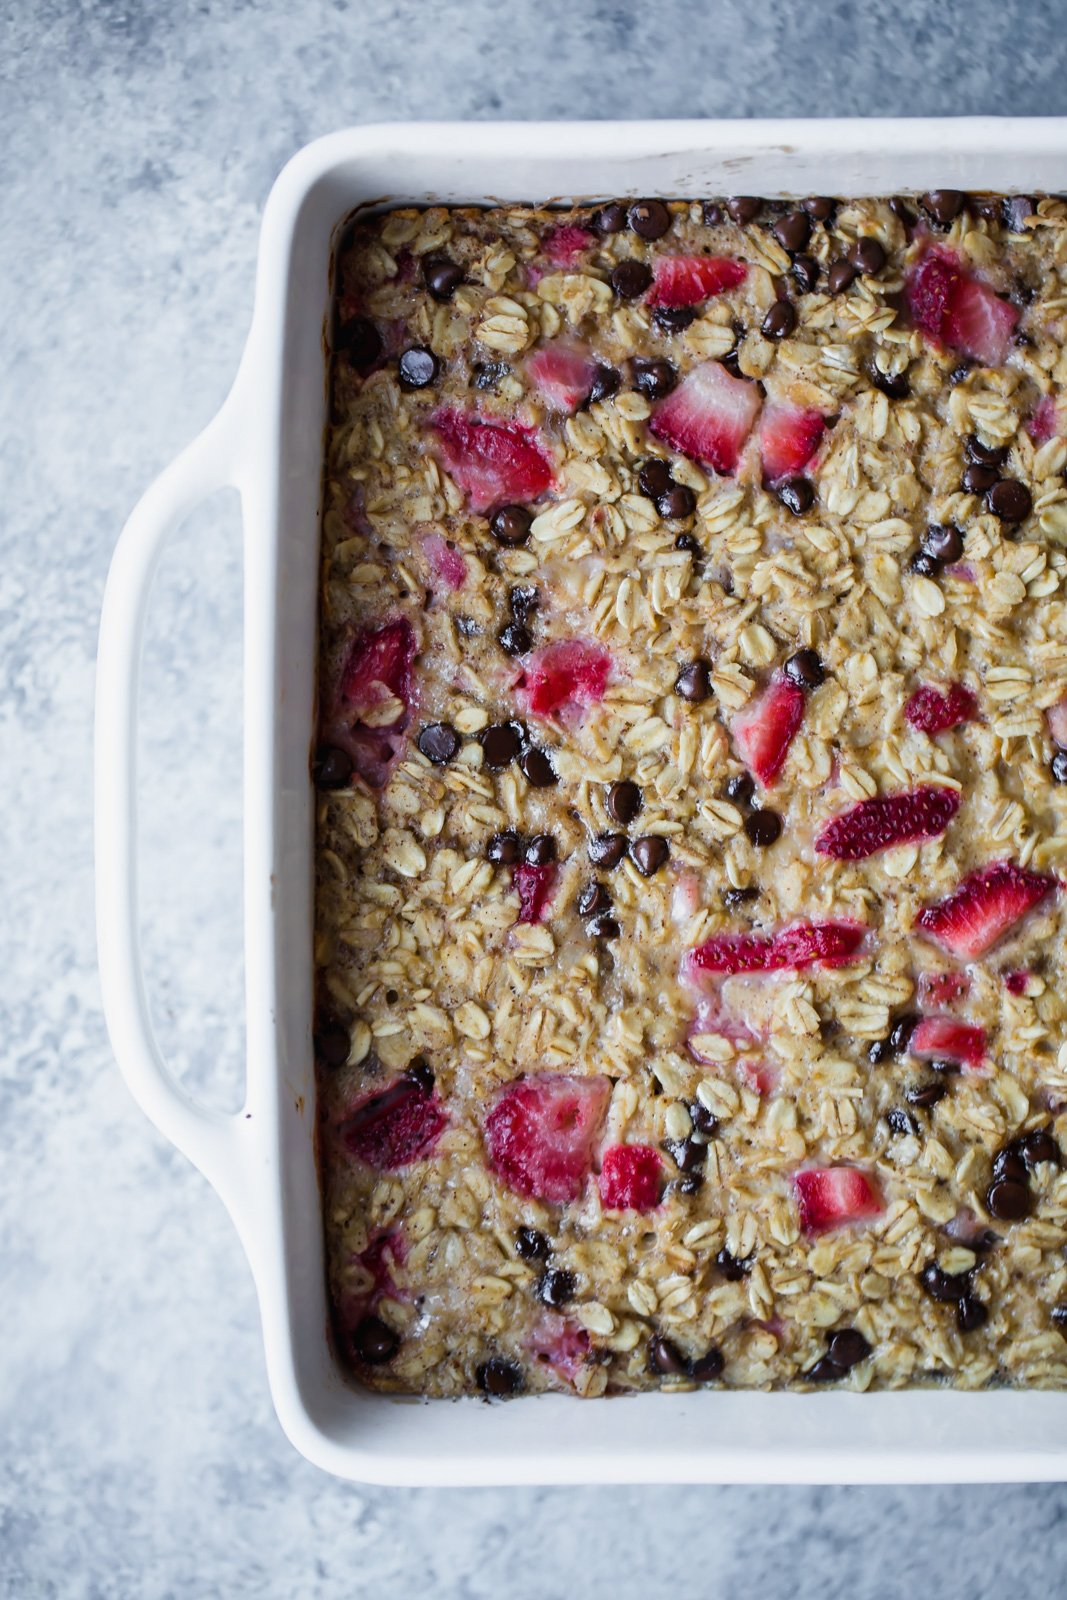 Healthy Baked Oatmeal with banana, strawberries and chocolate chips -- great for serving during the holidays or to meal prep for breakfast throughout the week. Simply reheat and enjoy! Recipe made in partnership with Almond Breeze almondmilk.